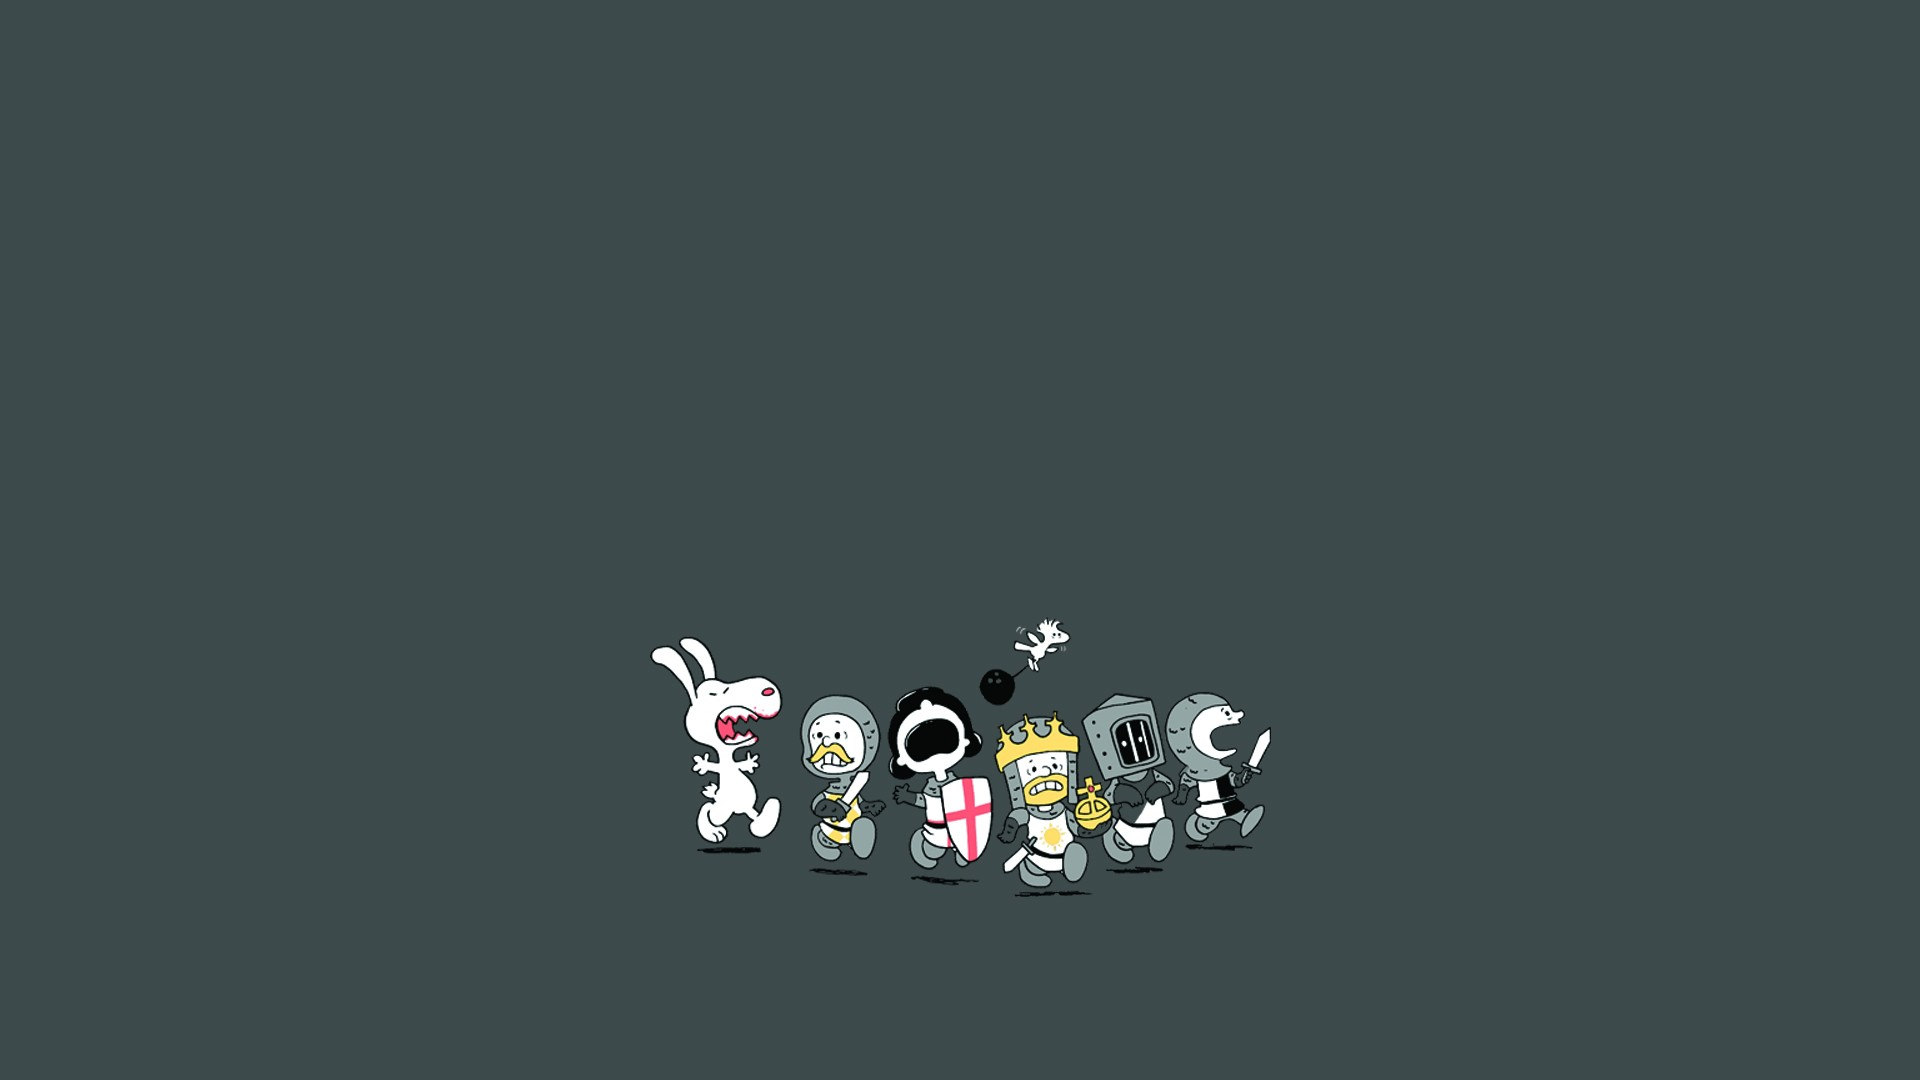 Python Holy Grail Peanuts Knights humor funny wallpaper background 1920x1080